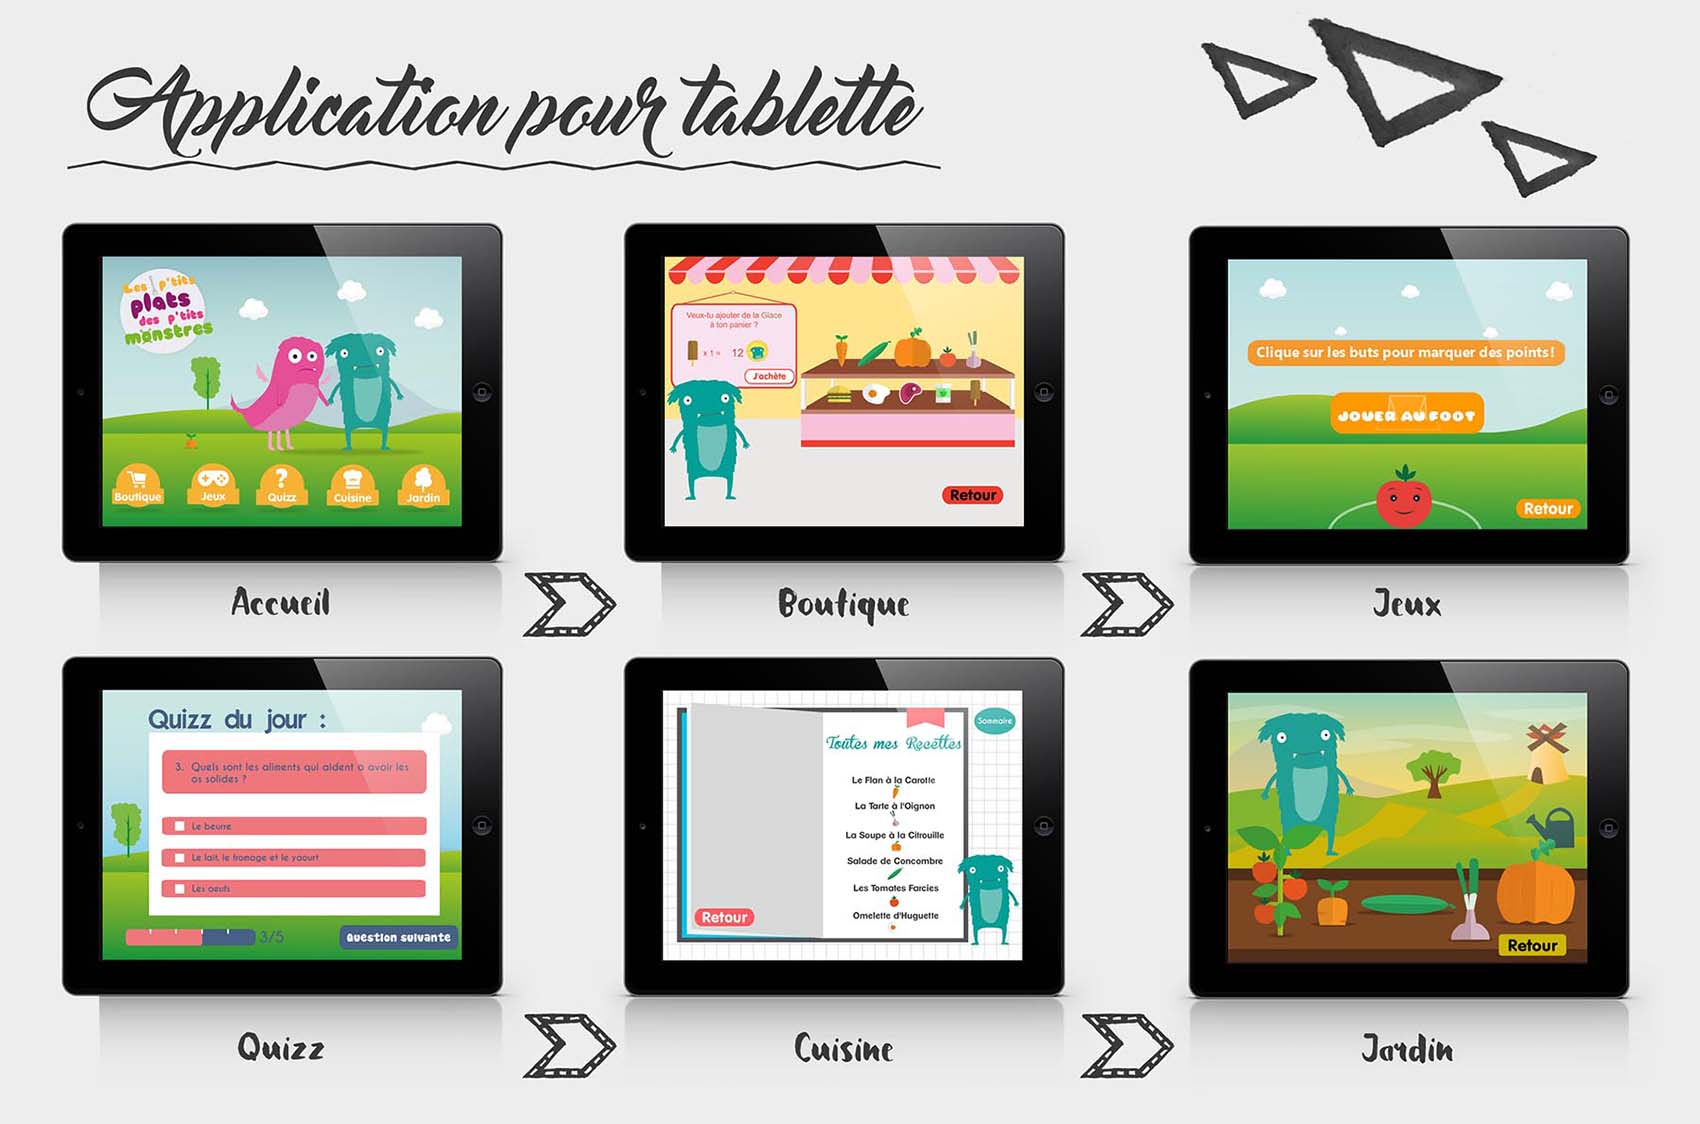 Graphisme - Application tablette